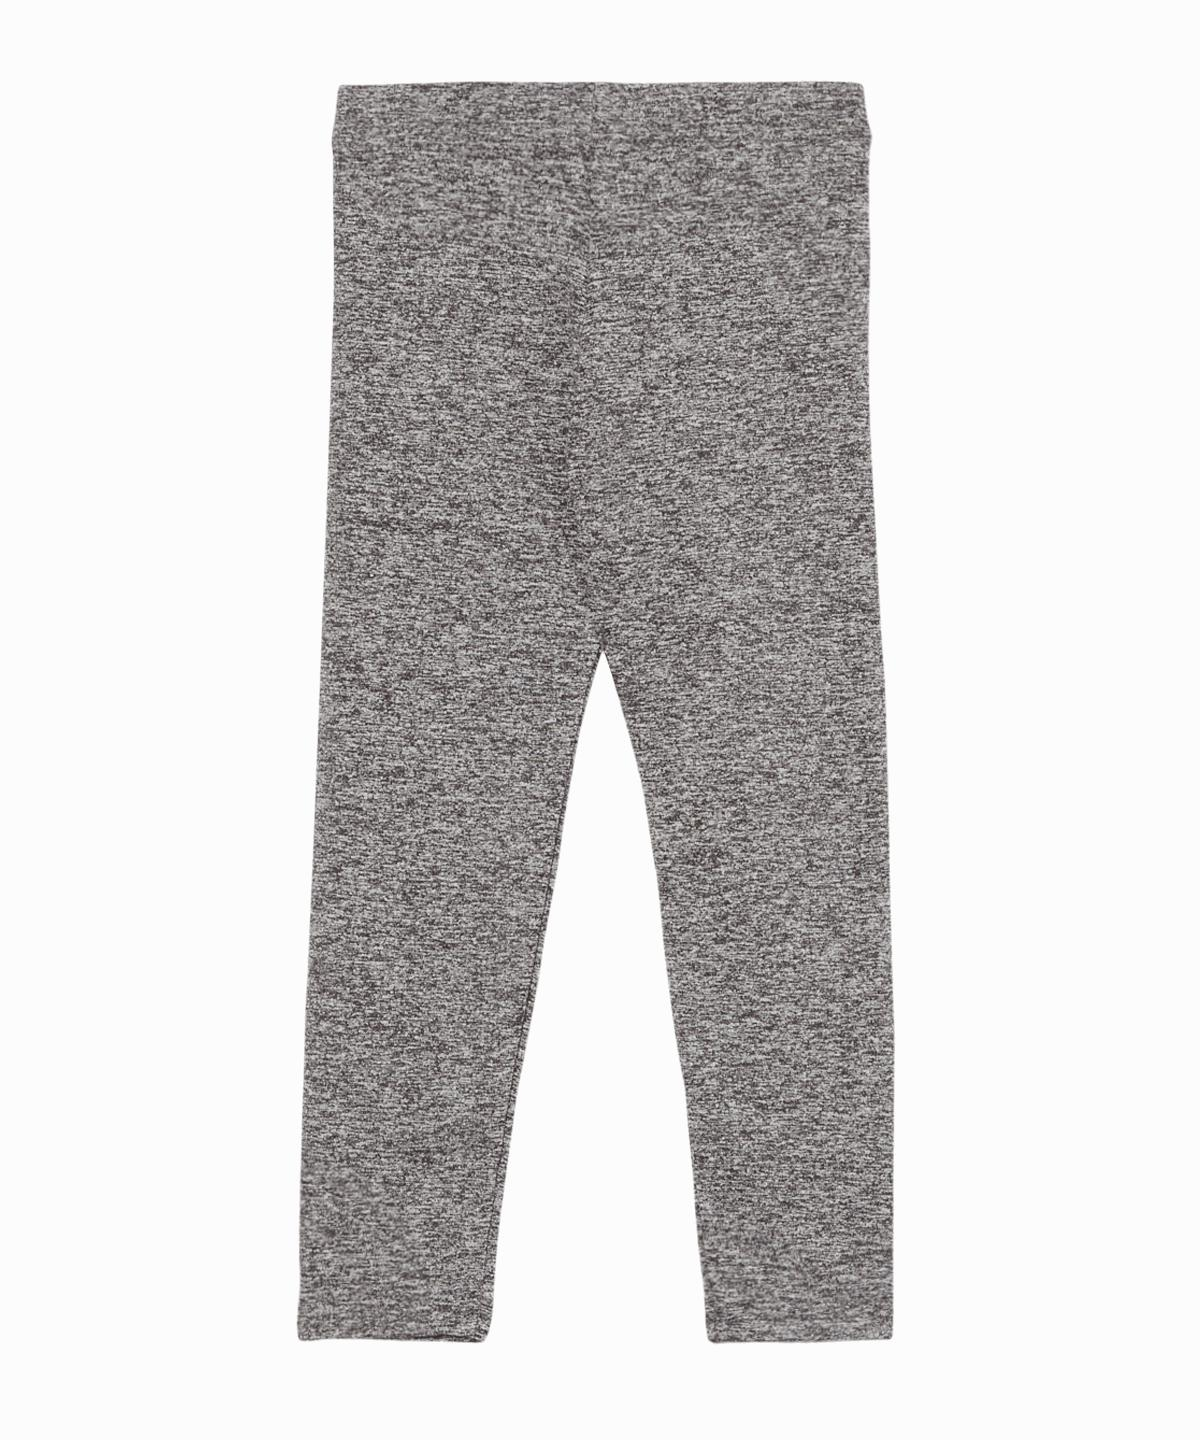 Grey Heather Leggings